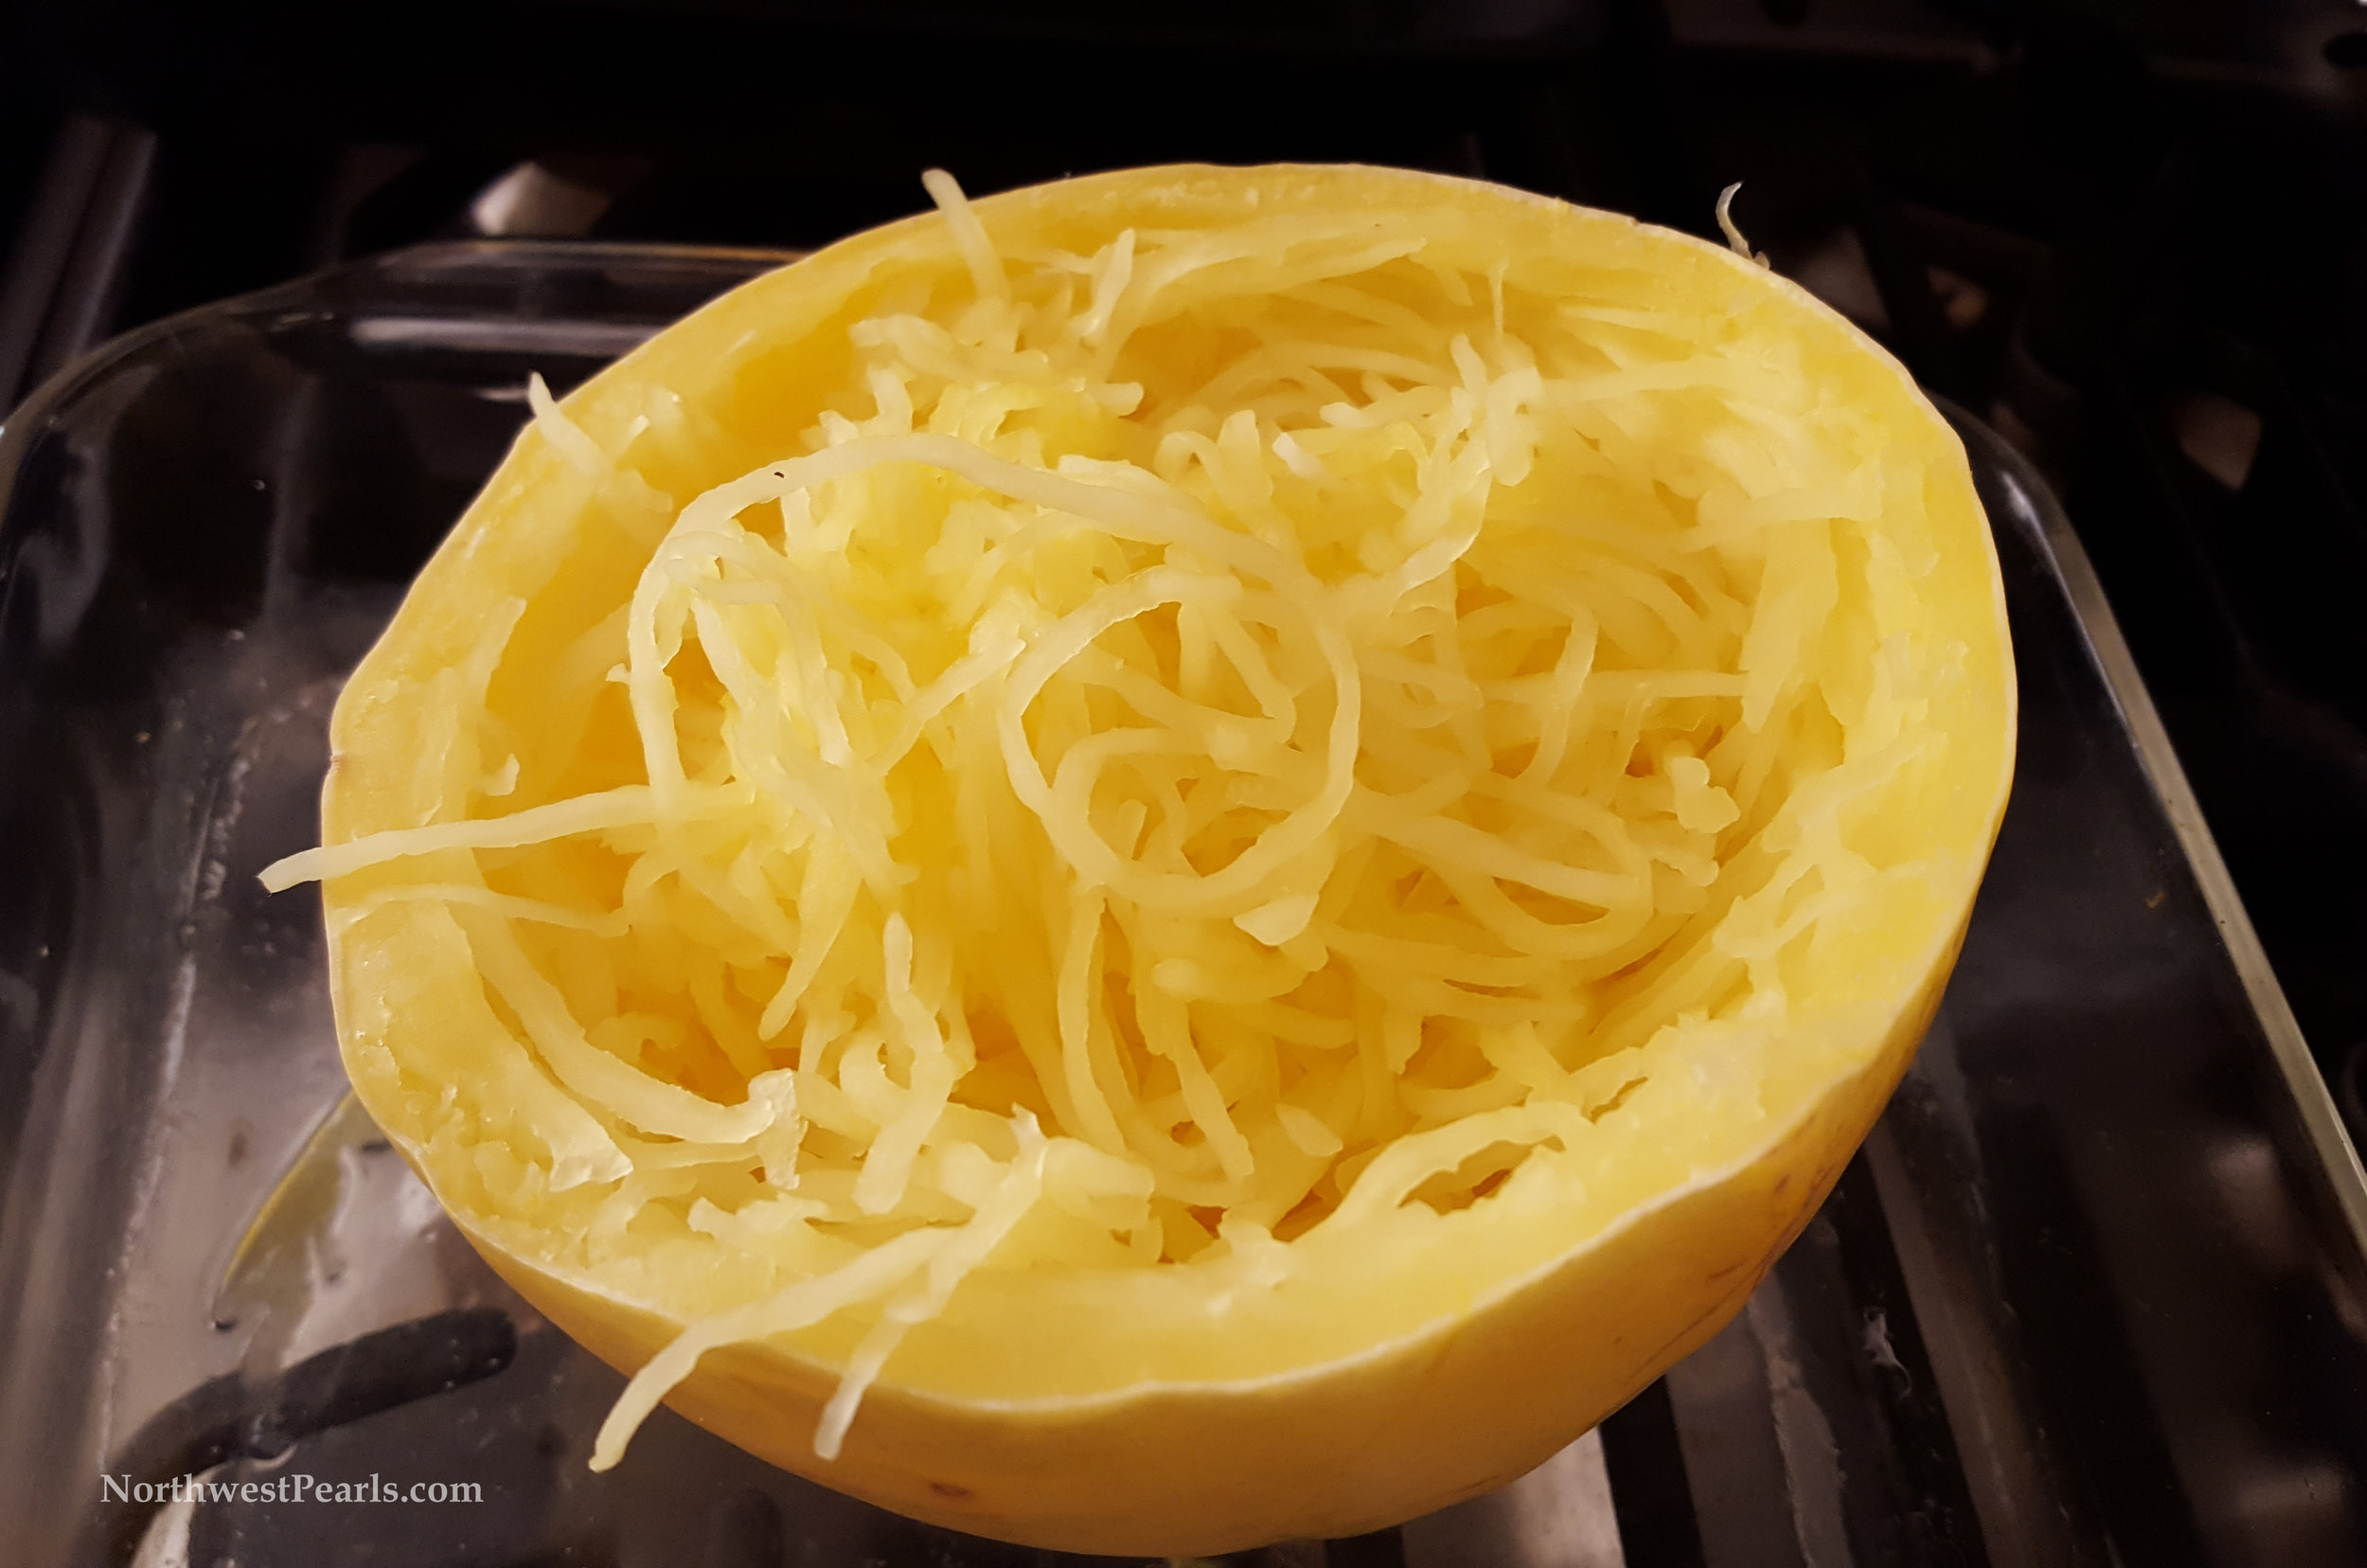 Northwest Pearls: Cooking Spaghetti Squash